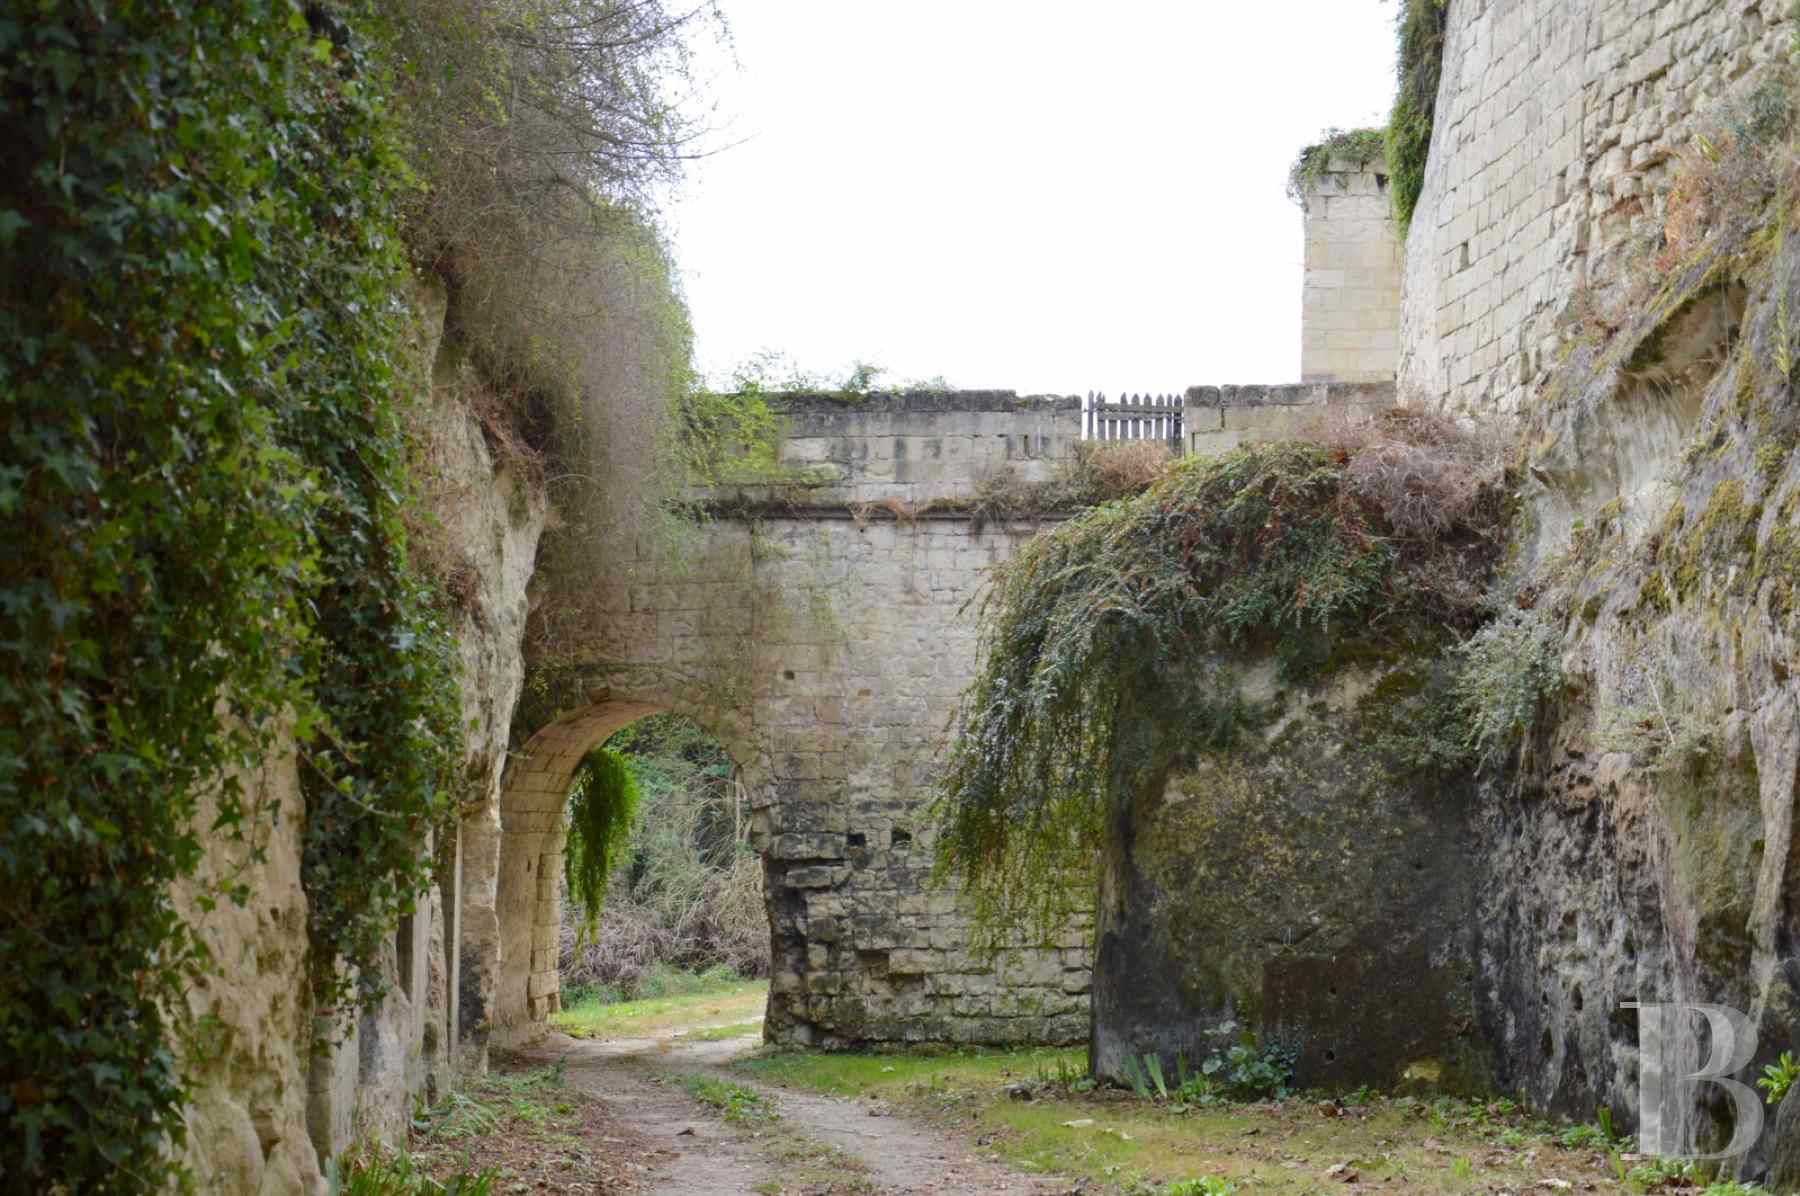 chateaux for sale France poitou charentes 12th century - 17 zoom